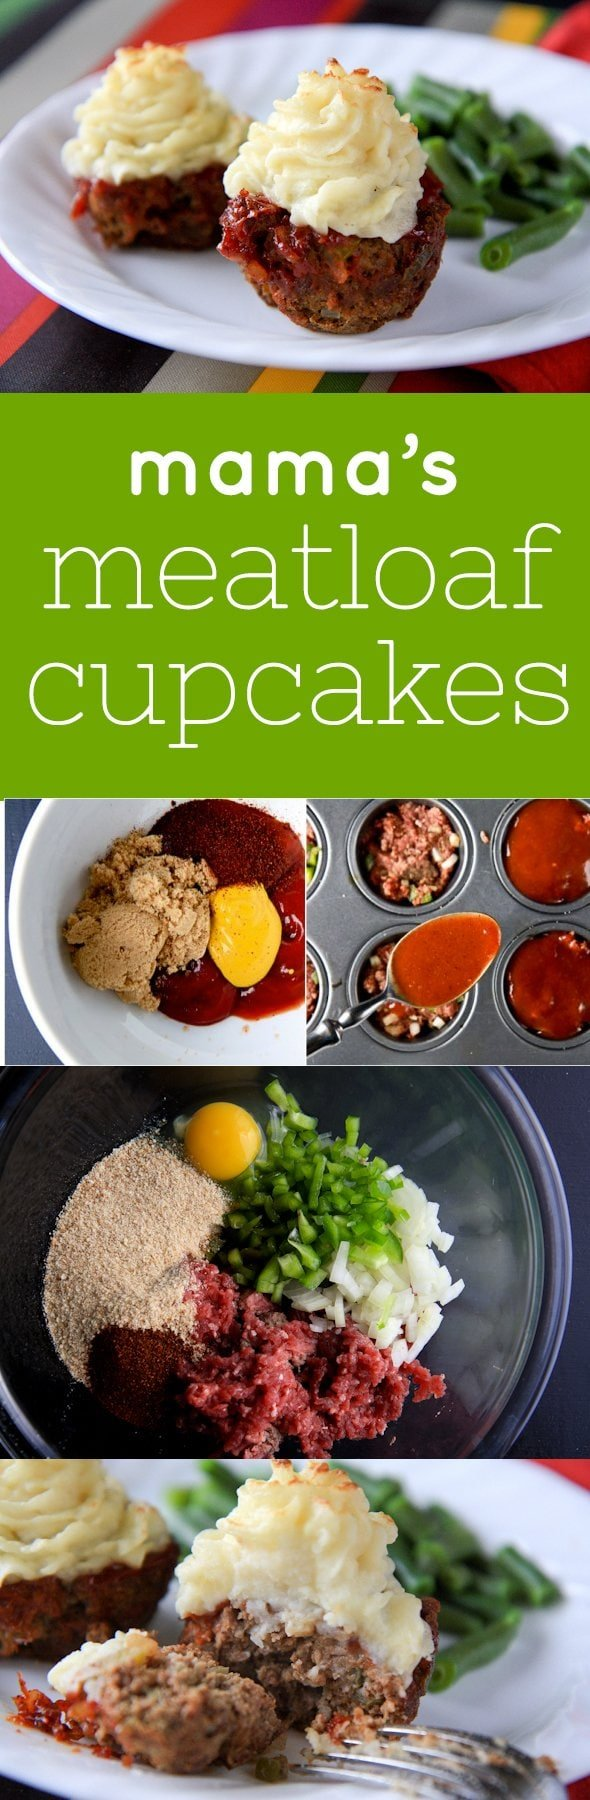 Mama's Meatloaf Cupcakes